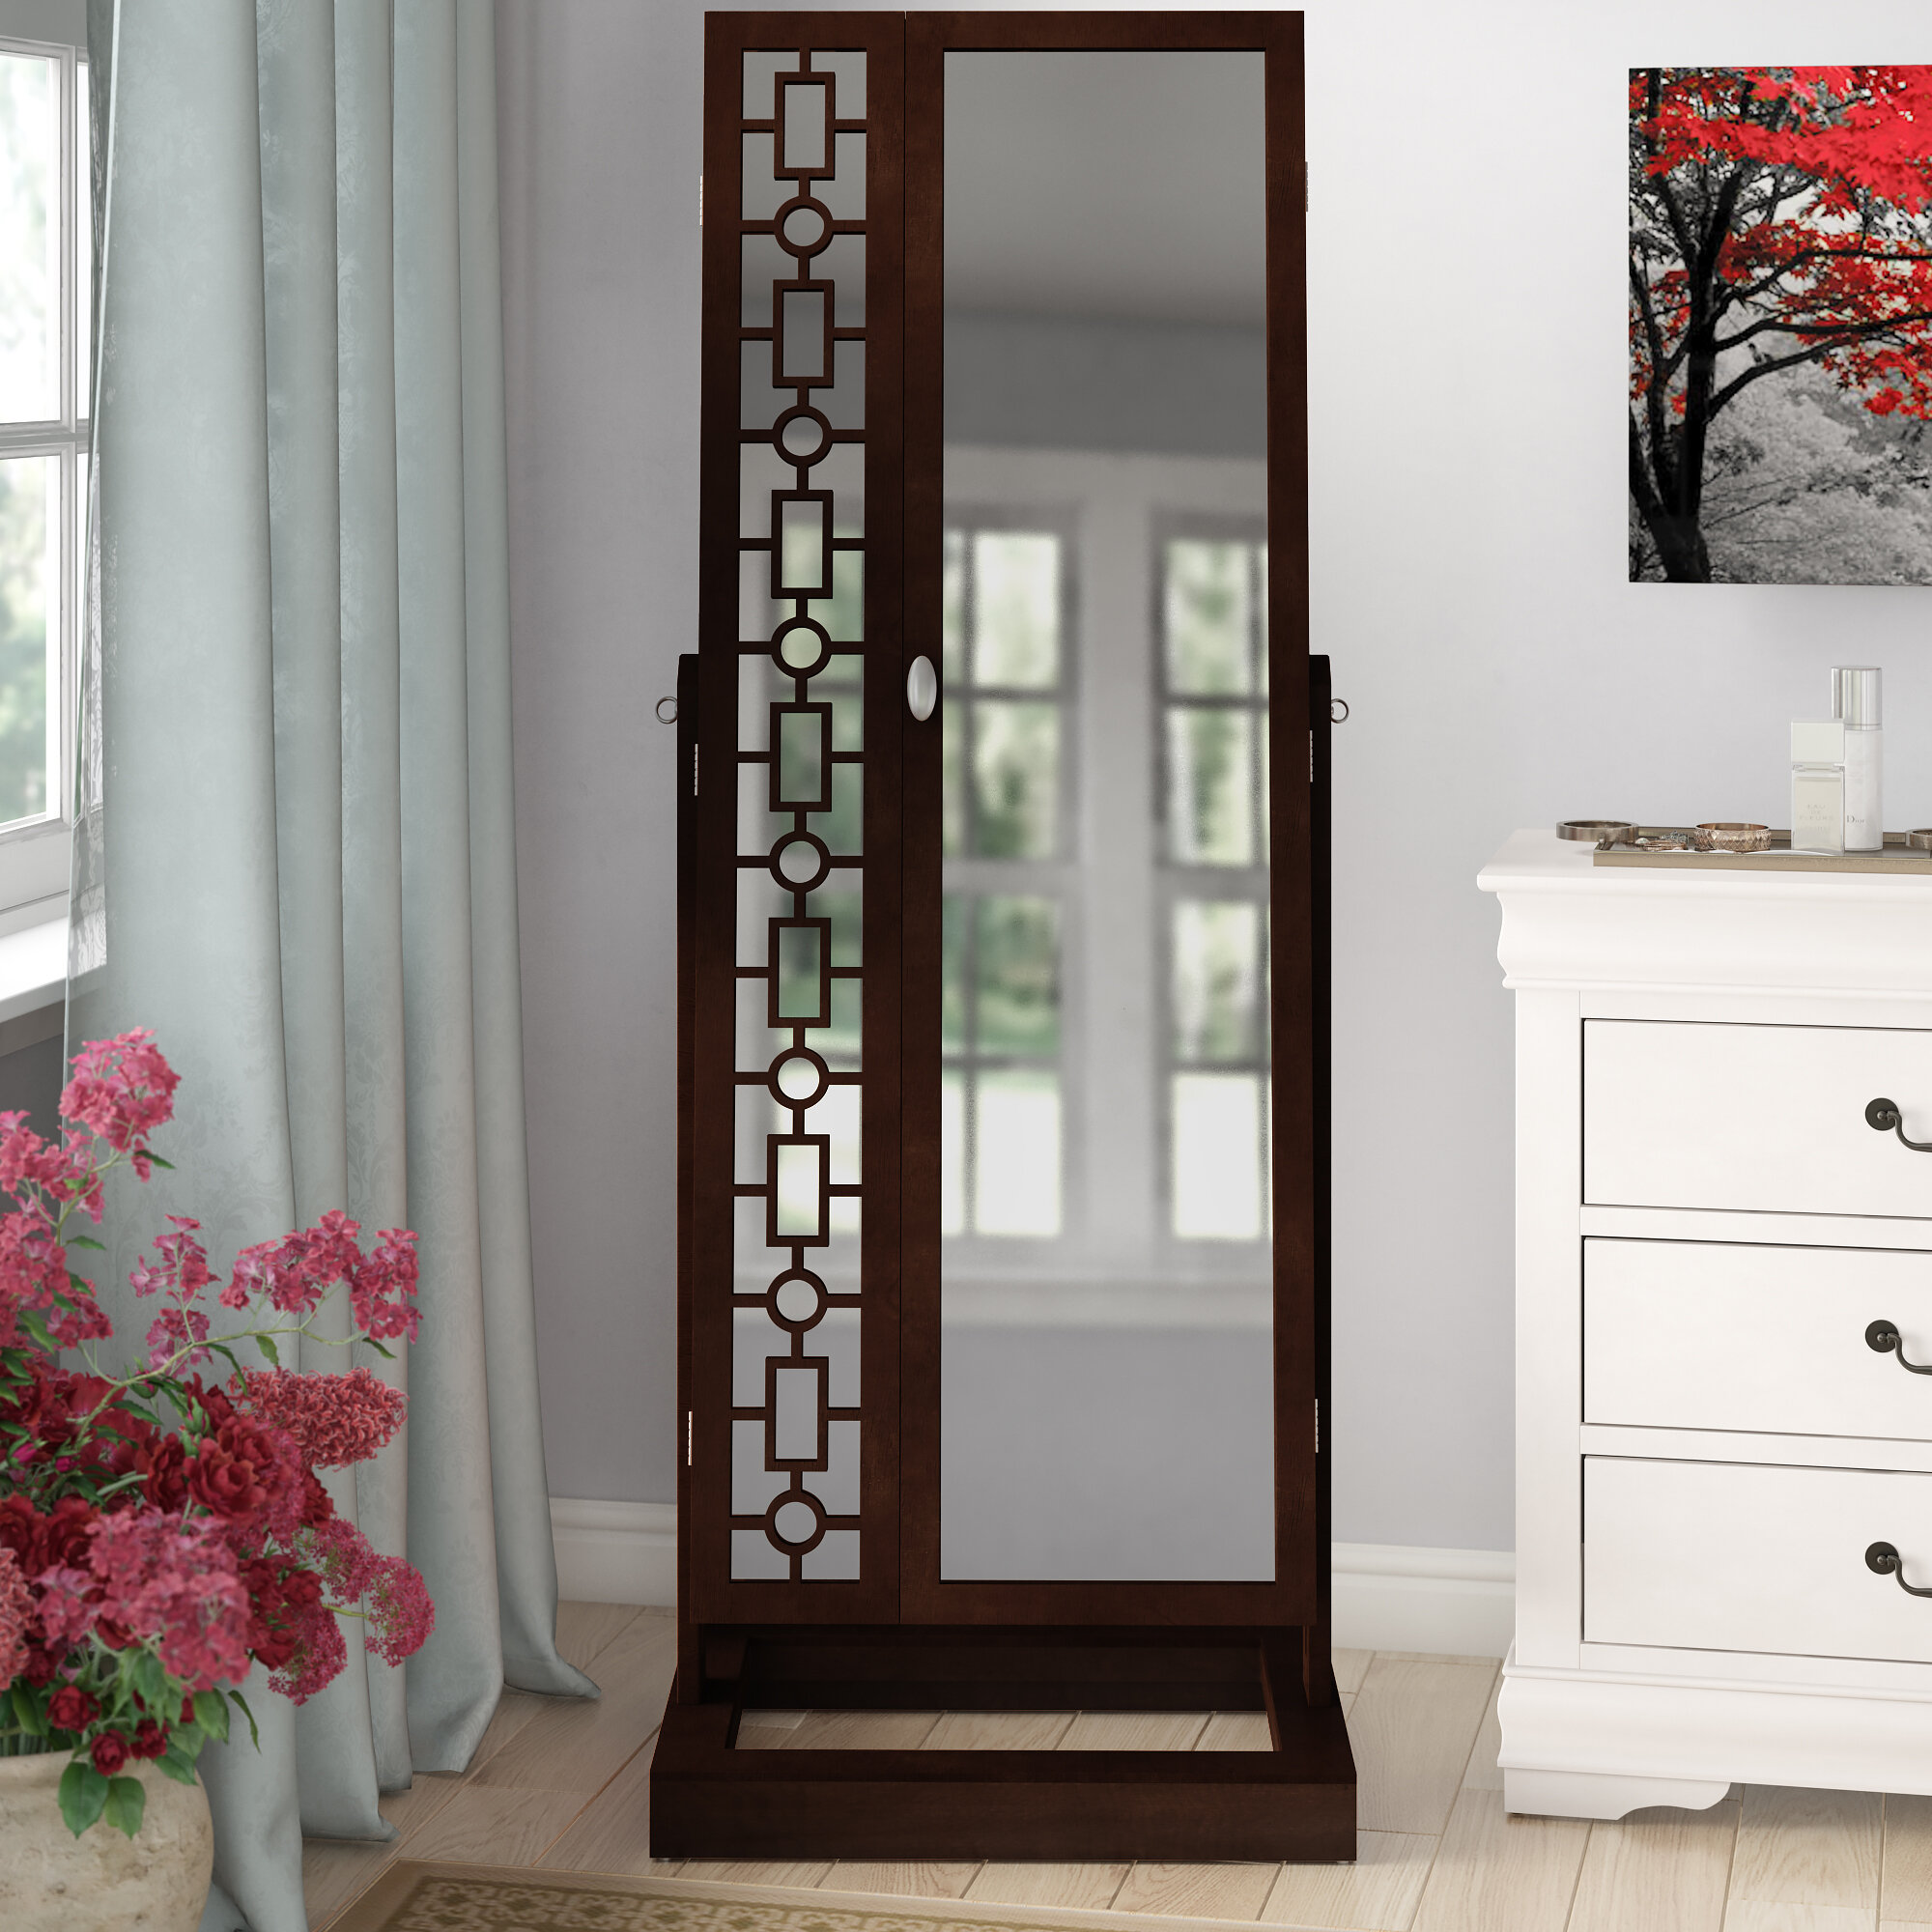 Darby Home Co Critchfield Cheval Jewelry Armoire With Mirror Reviews Wayfair